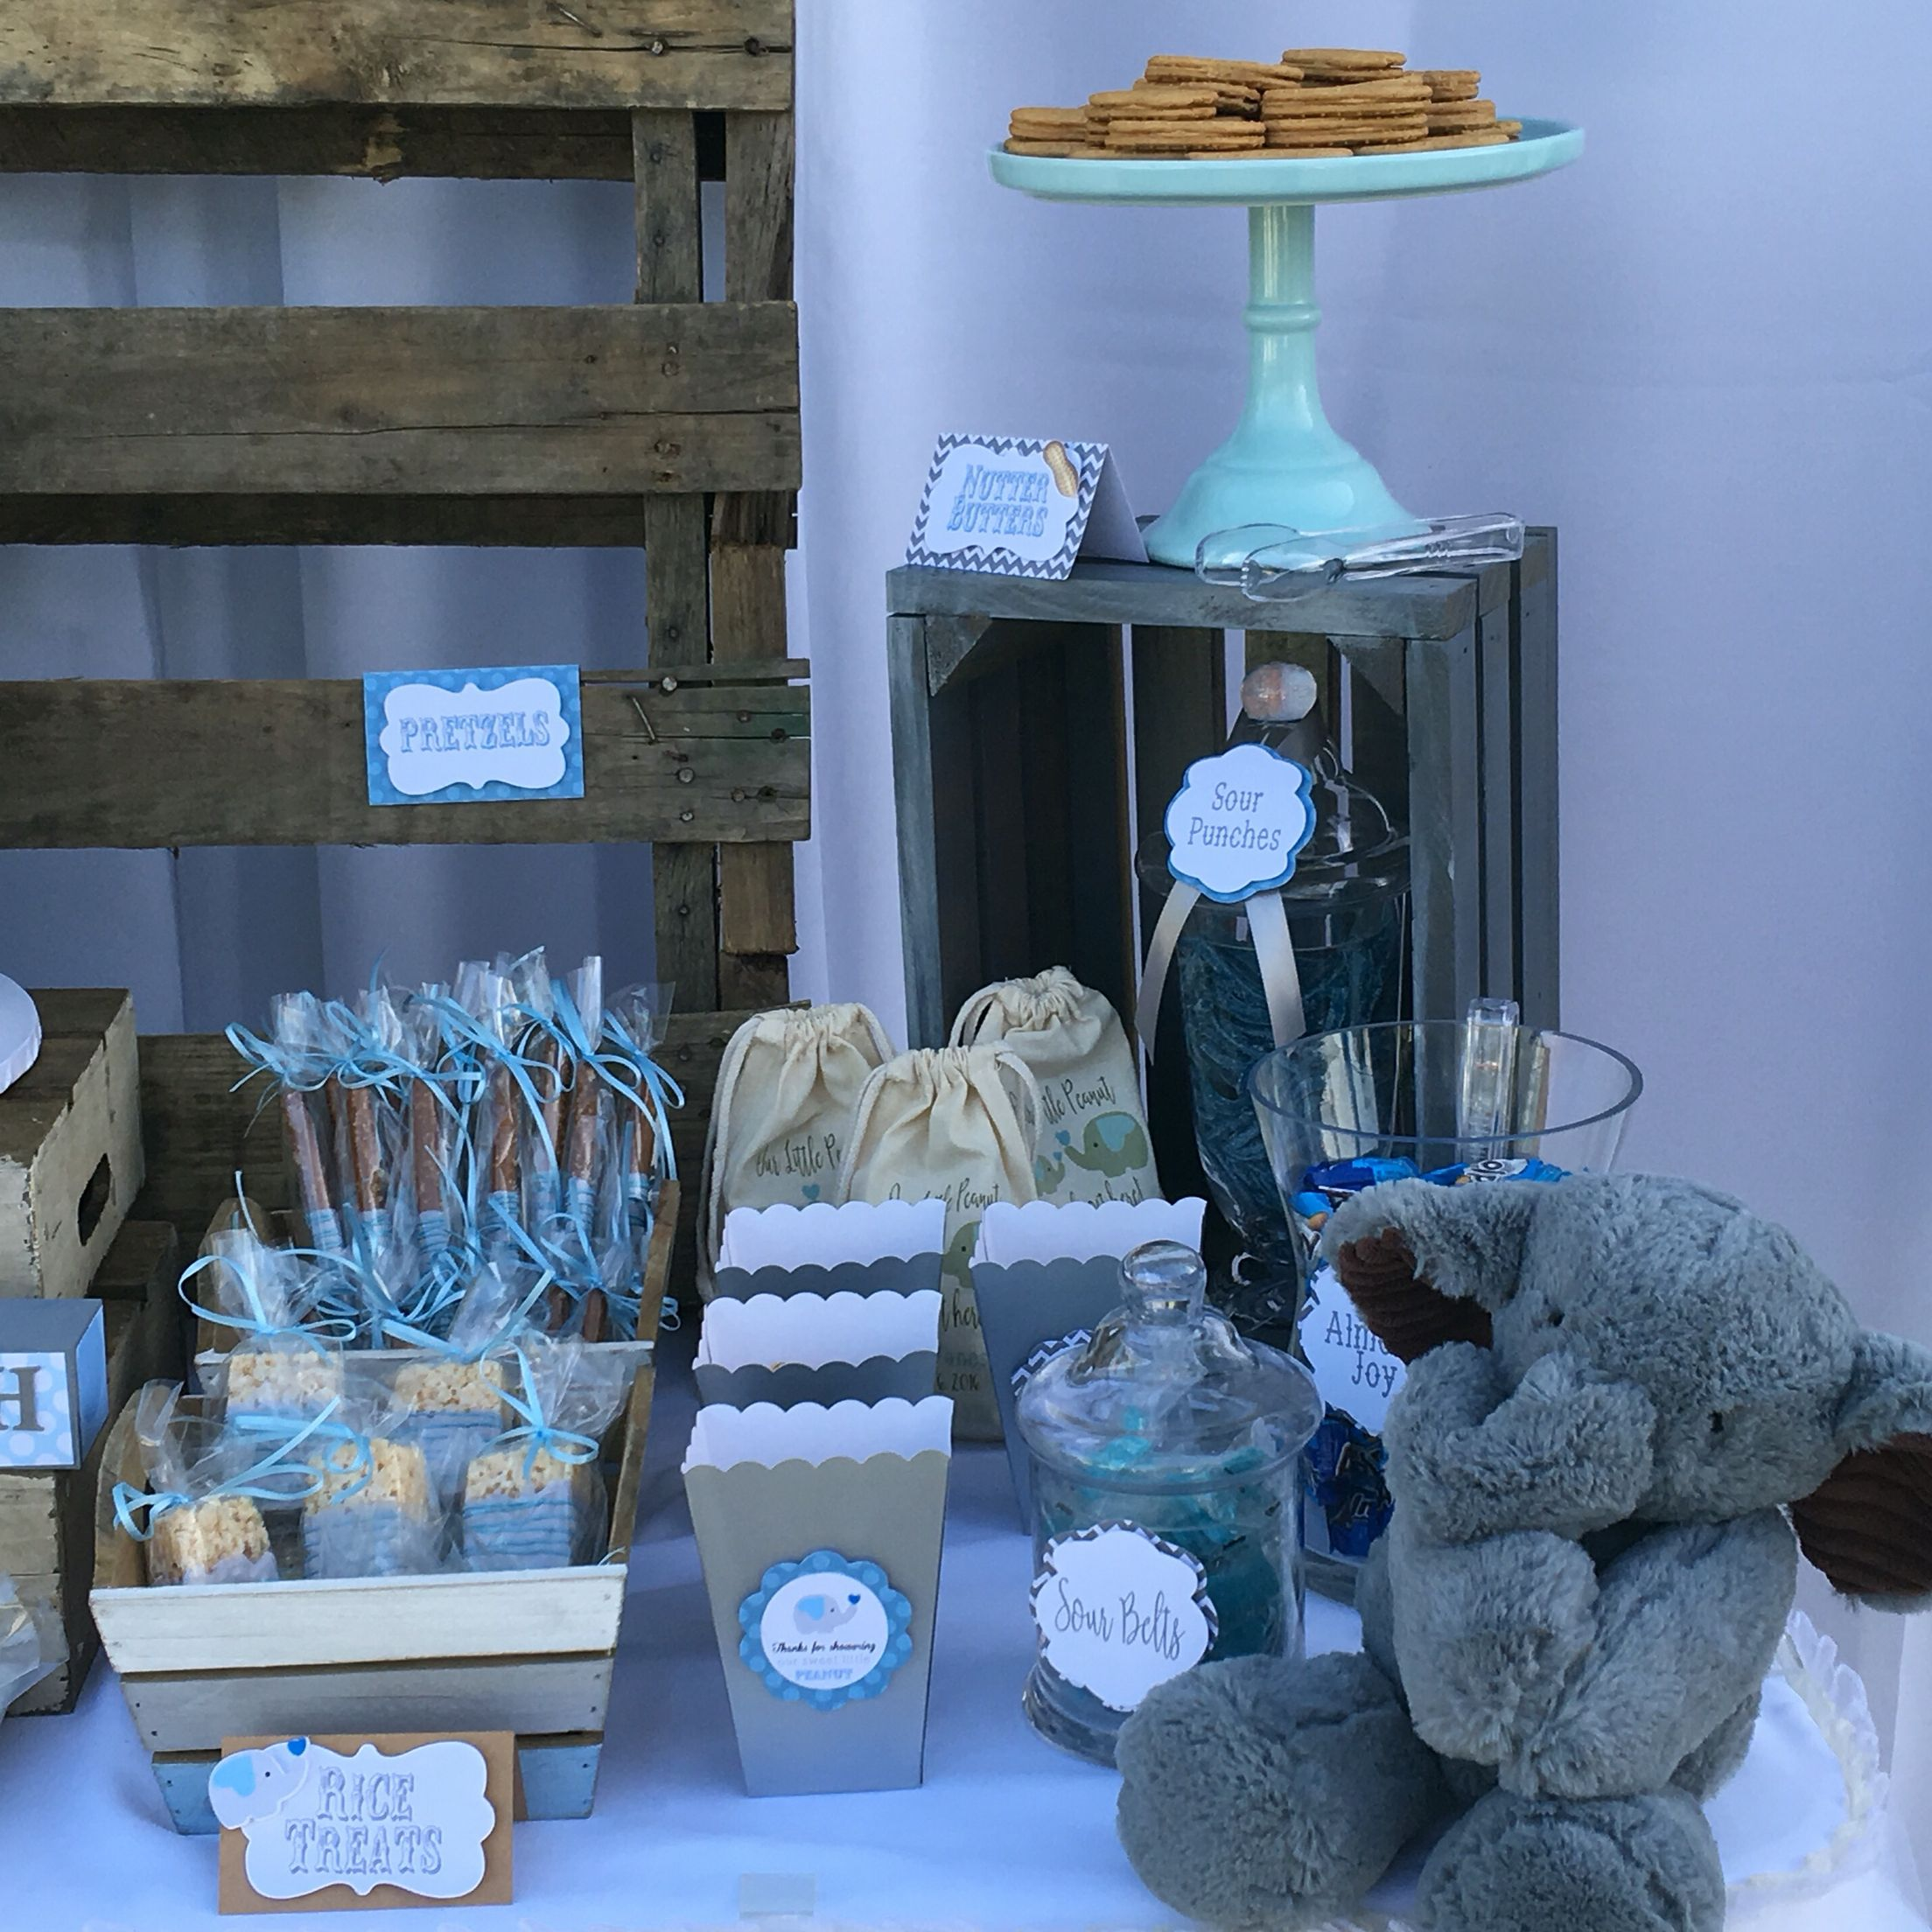 Elephant Themed Baby Shower: Rustic Blue And Gray Elephant Baby Shower Theme